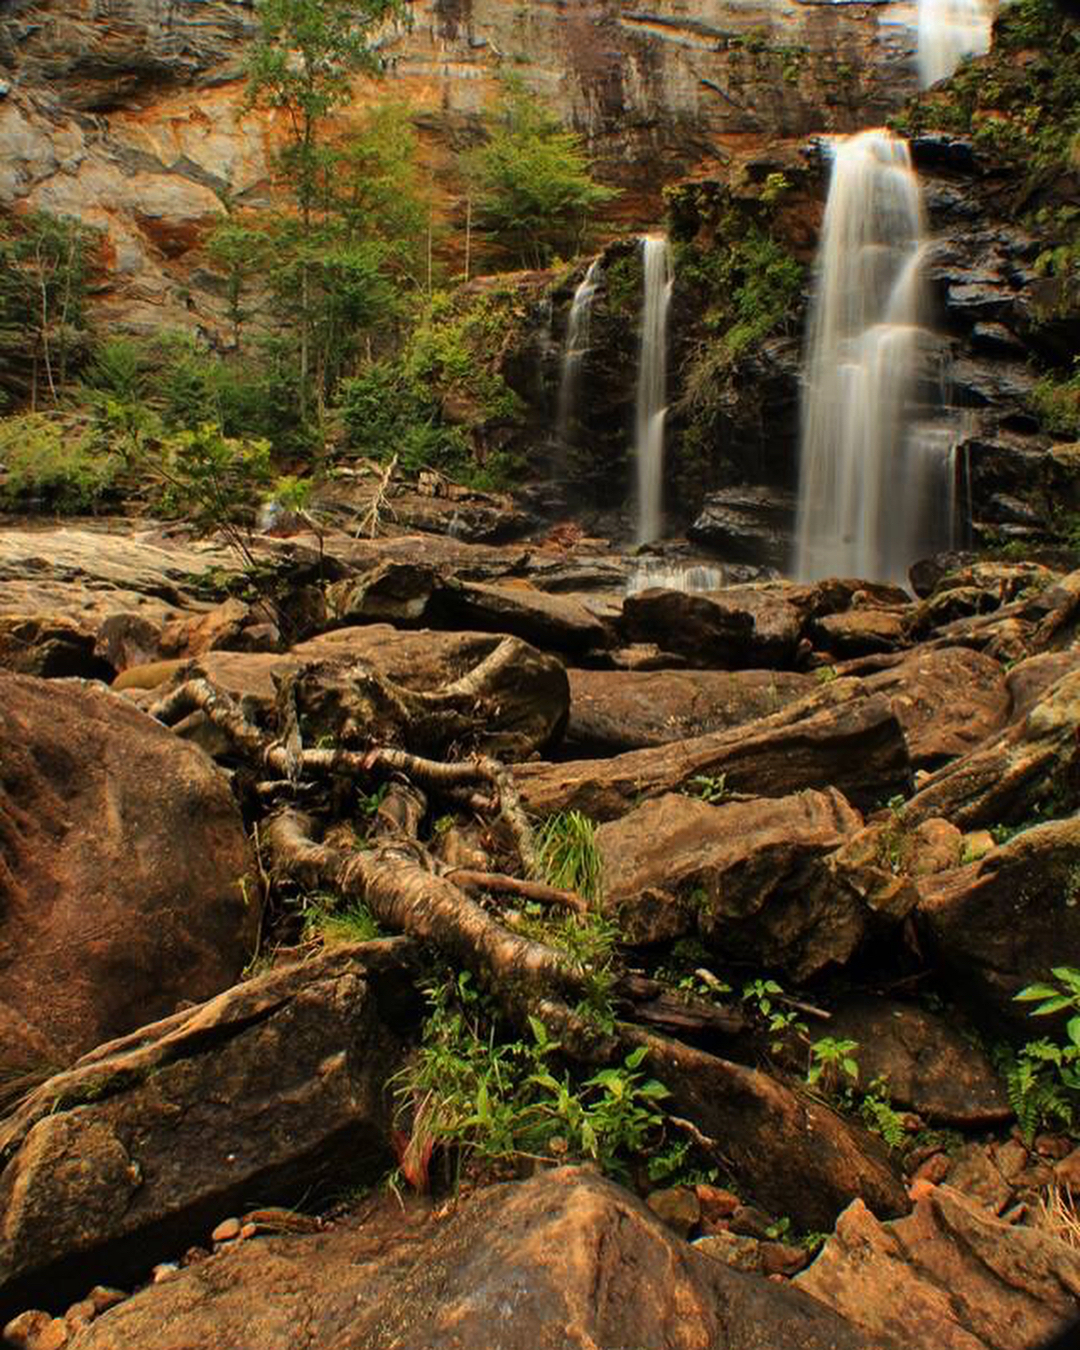 Asheville Hikes - High Falls Trail at Lake Glenville - Original Photo